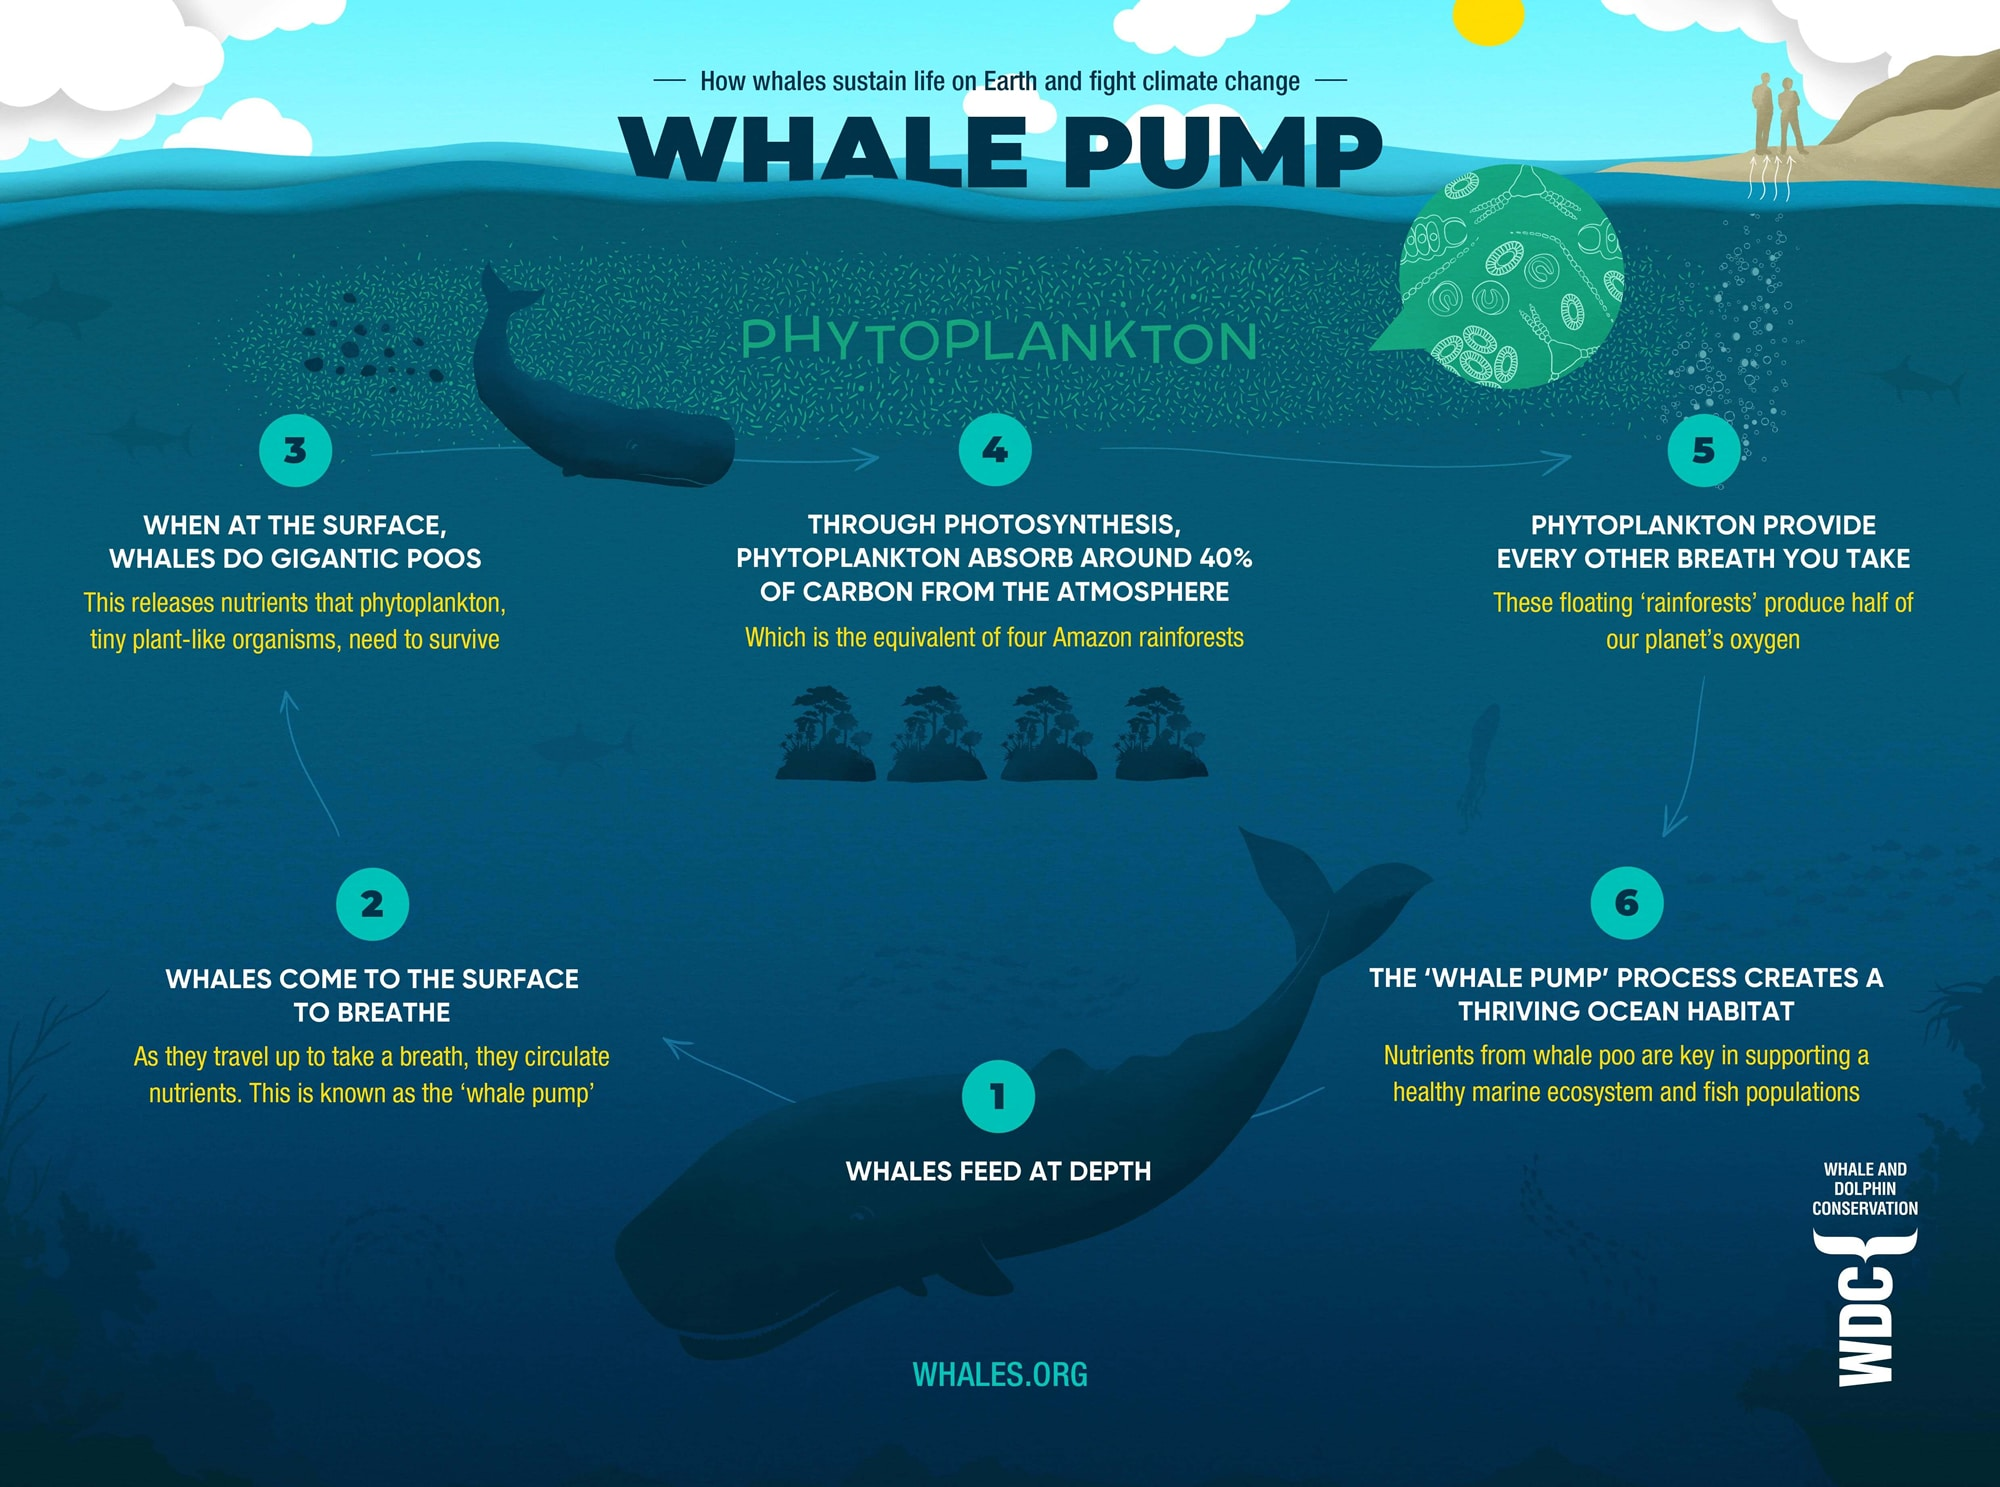 Whale Pump - How whales sustain life on Earth and help fight climate change.